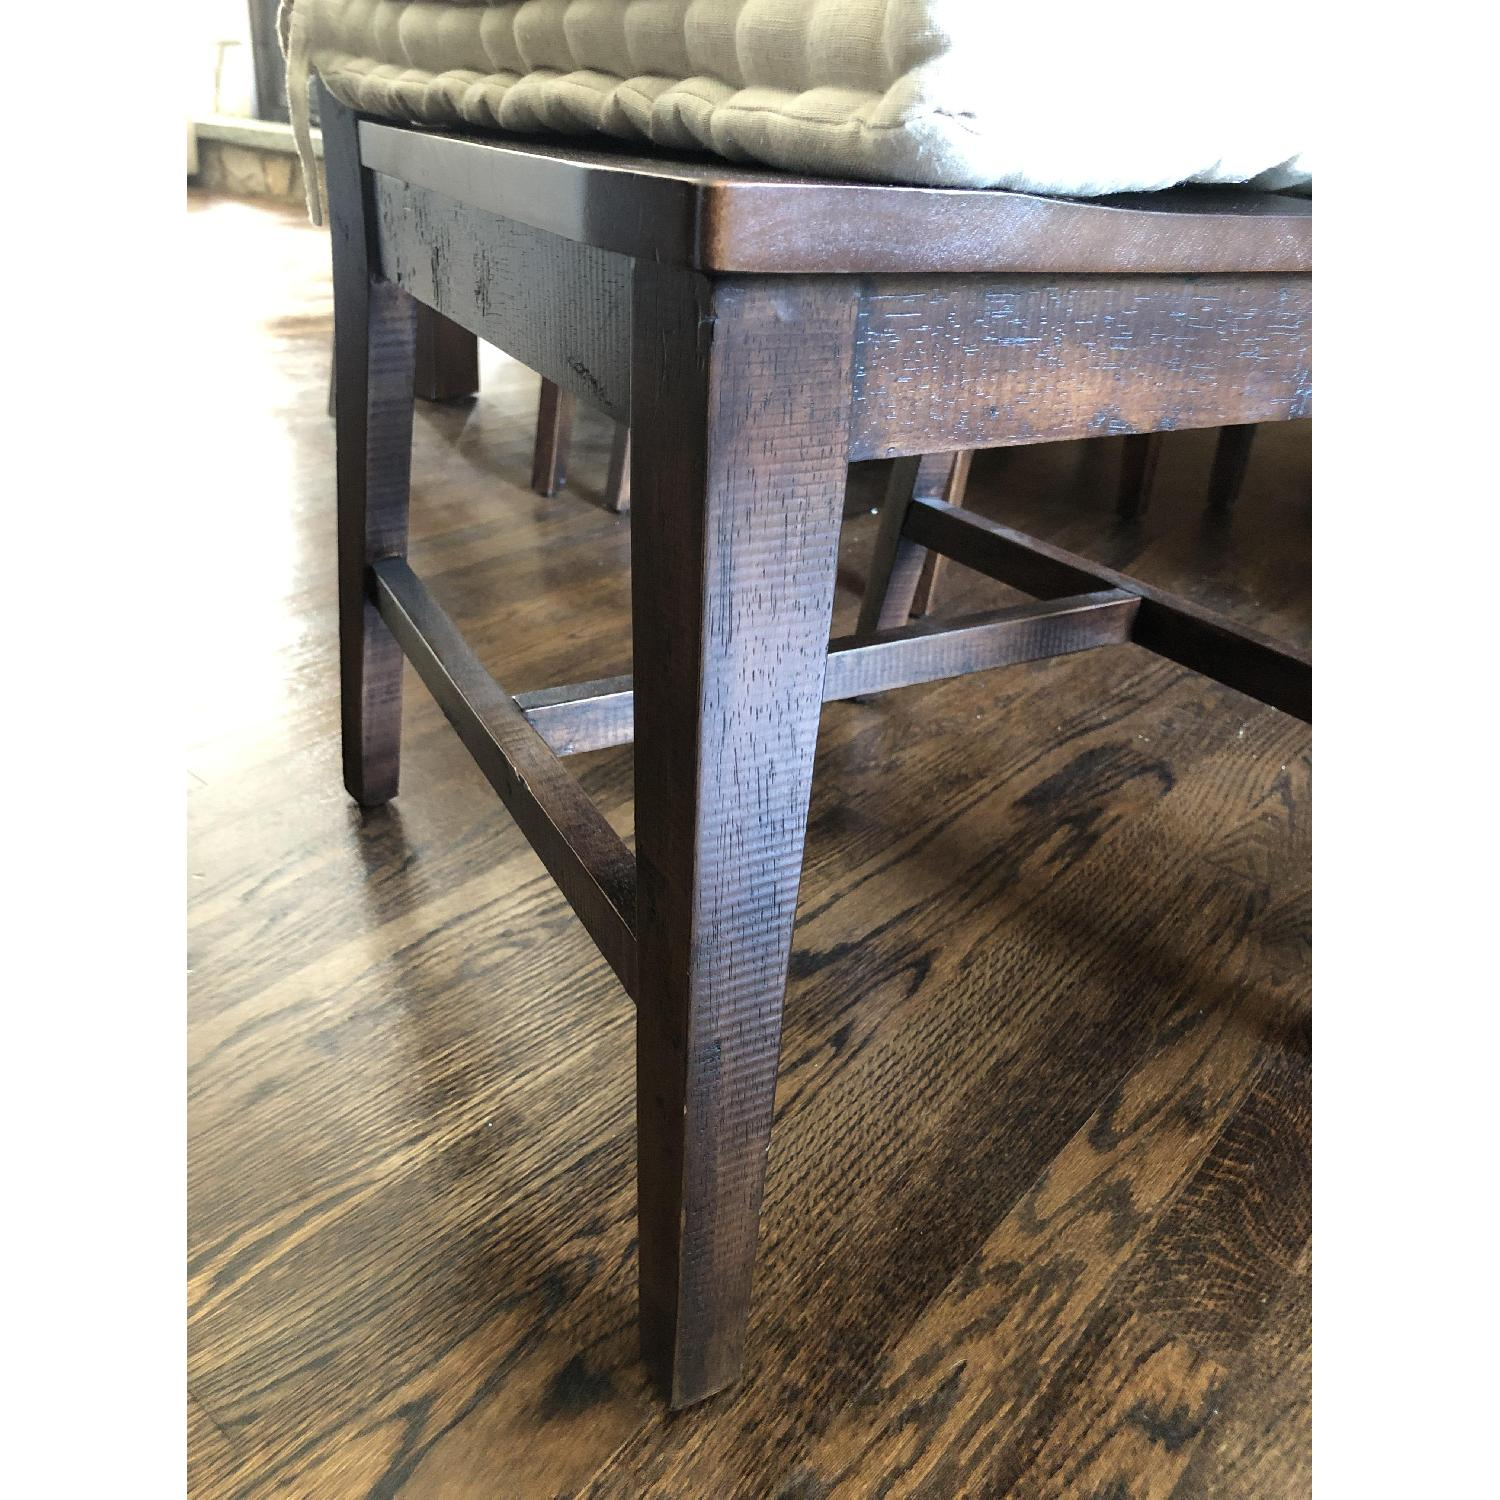 Pier 1 Dining Table w/ 6 Chairs - image-7